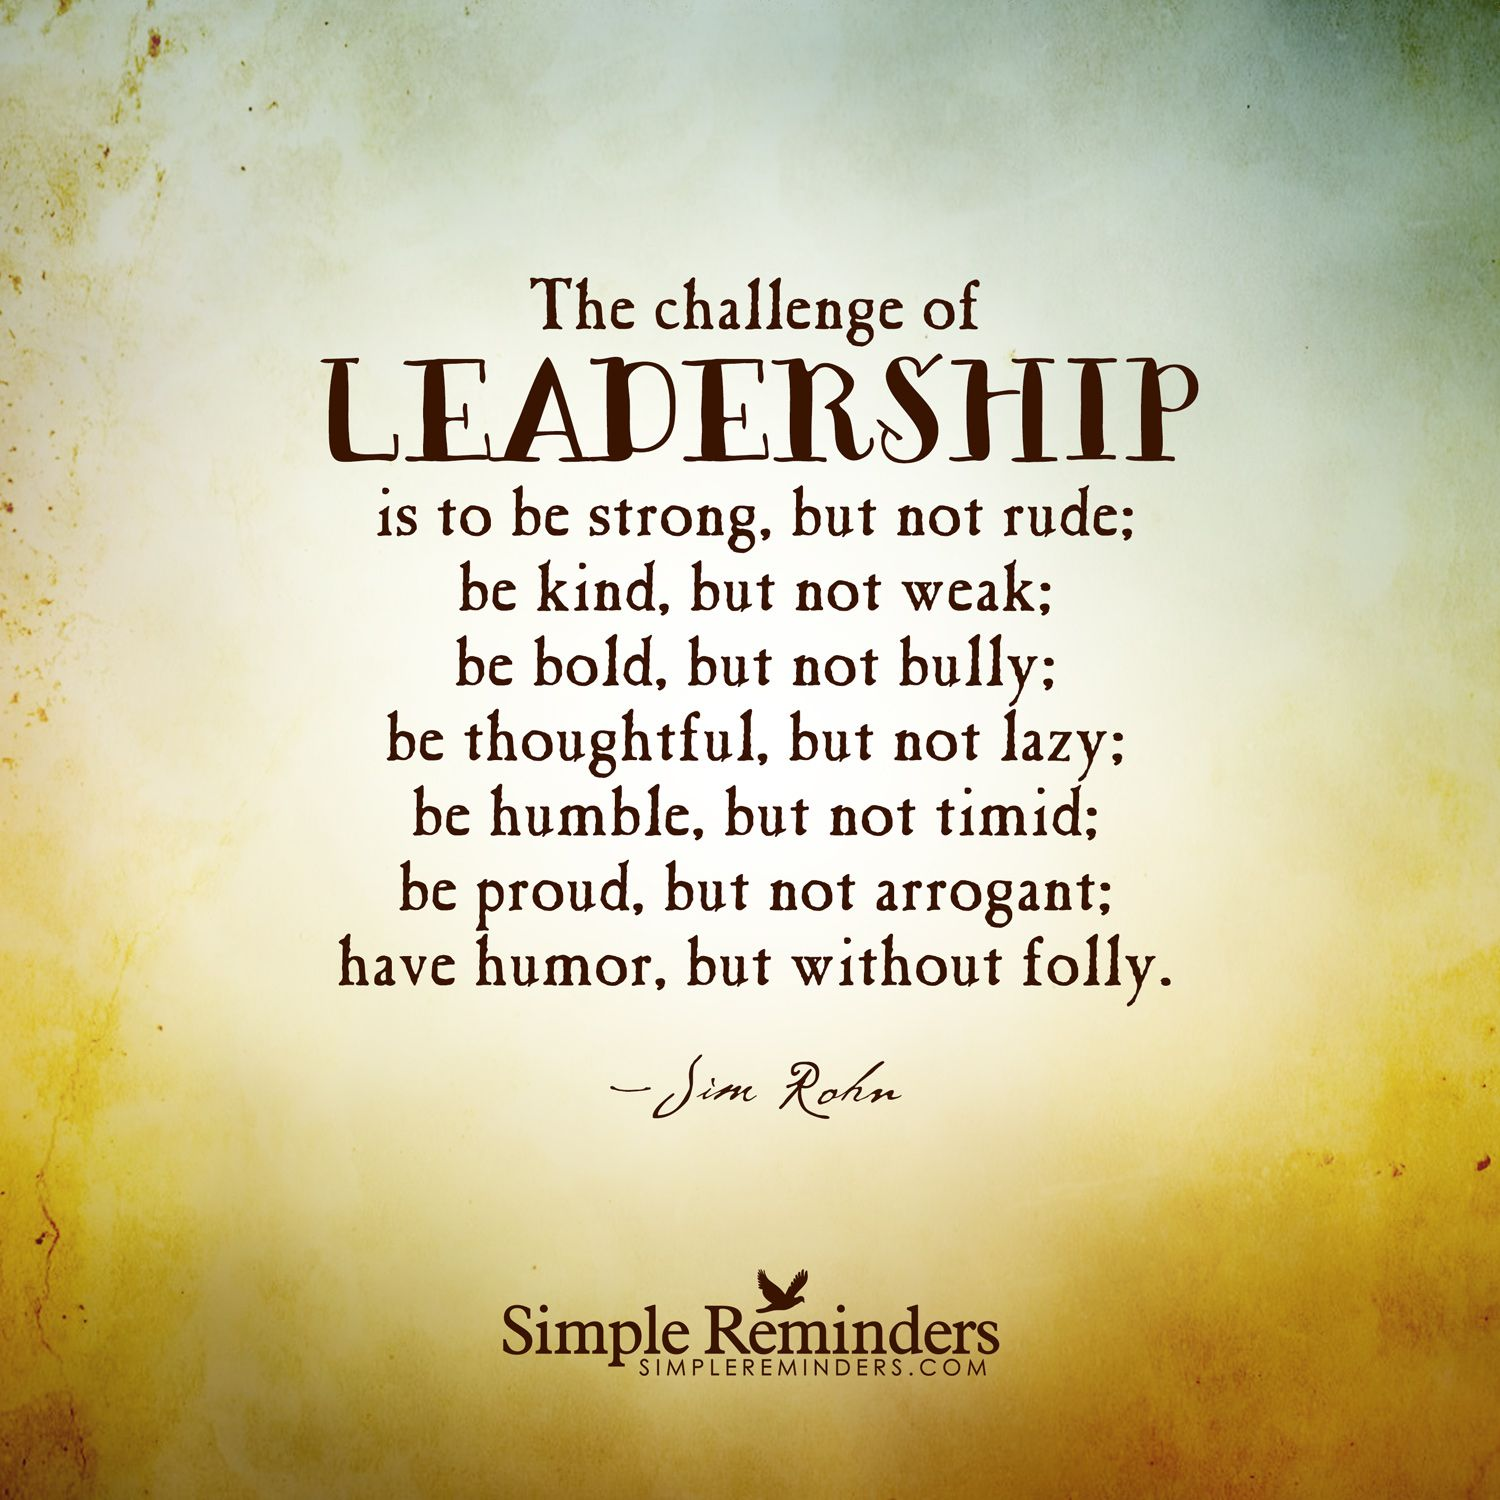 Jim Rohn Quotes Work Tips Pinterest Leadership Leadership